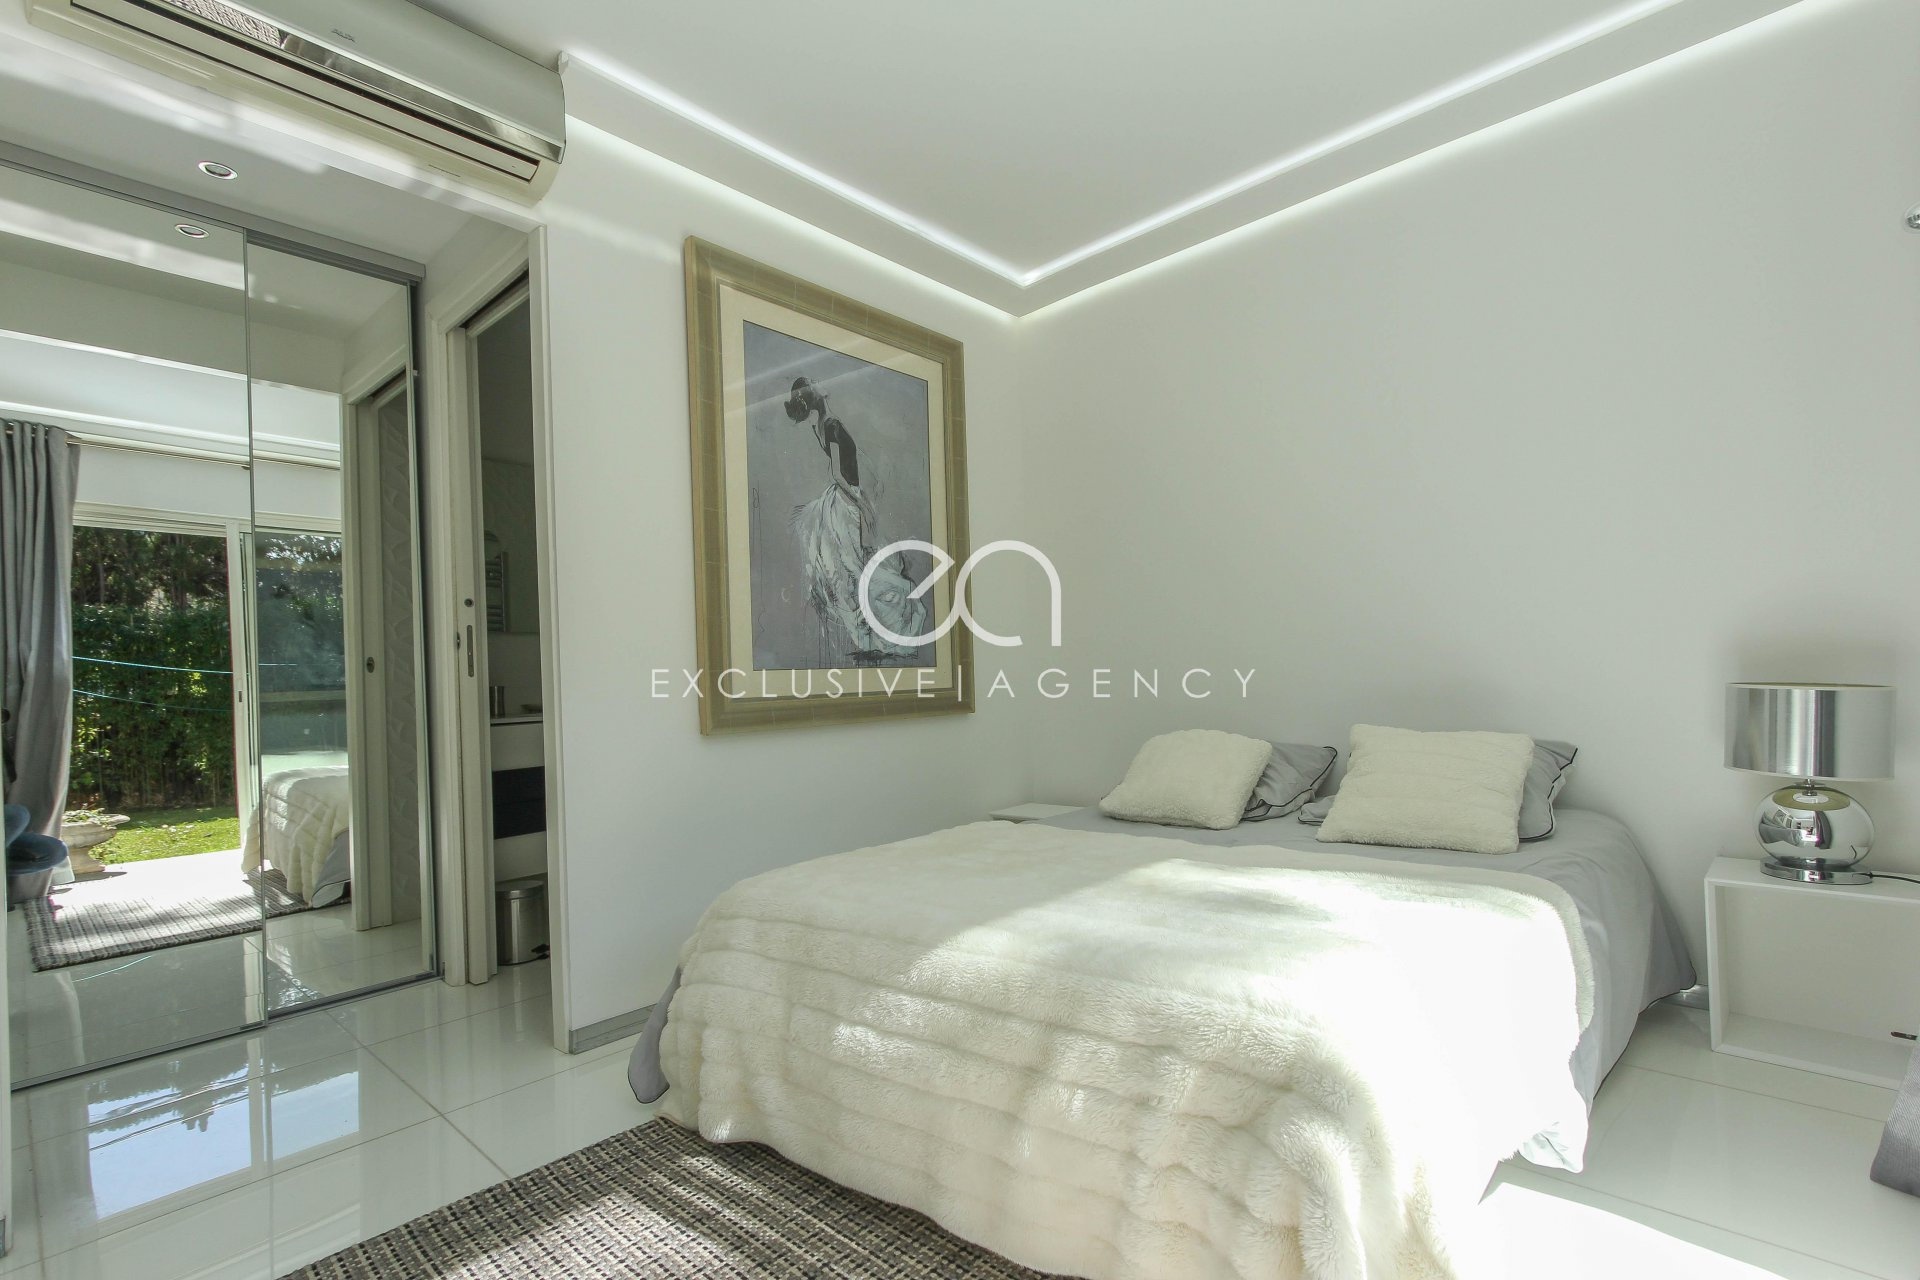 SEASONNAL RENTAL Cannes Montfleury 210sqm villa with pool for 4 to 8 people